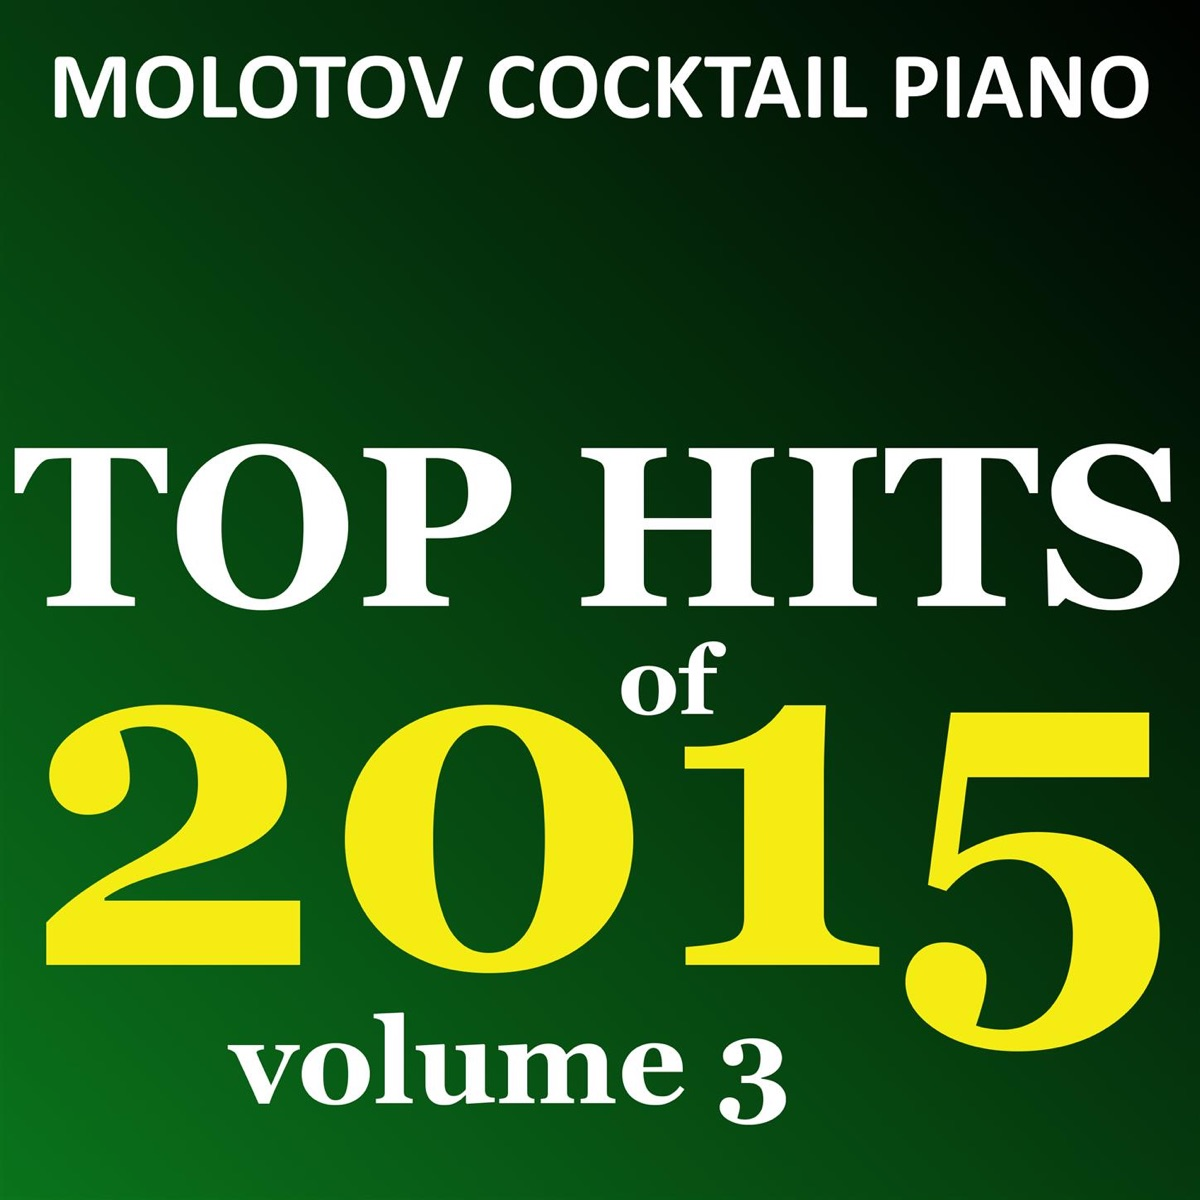 Top Hits of 2015 Vol 3 Molotov Cocktail Piano CD cover